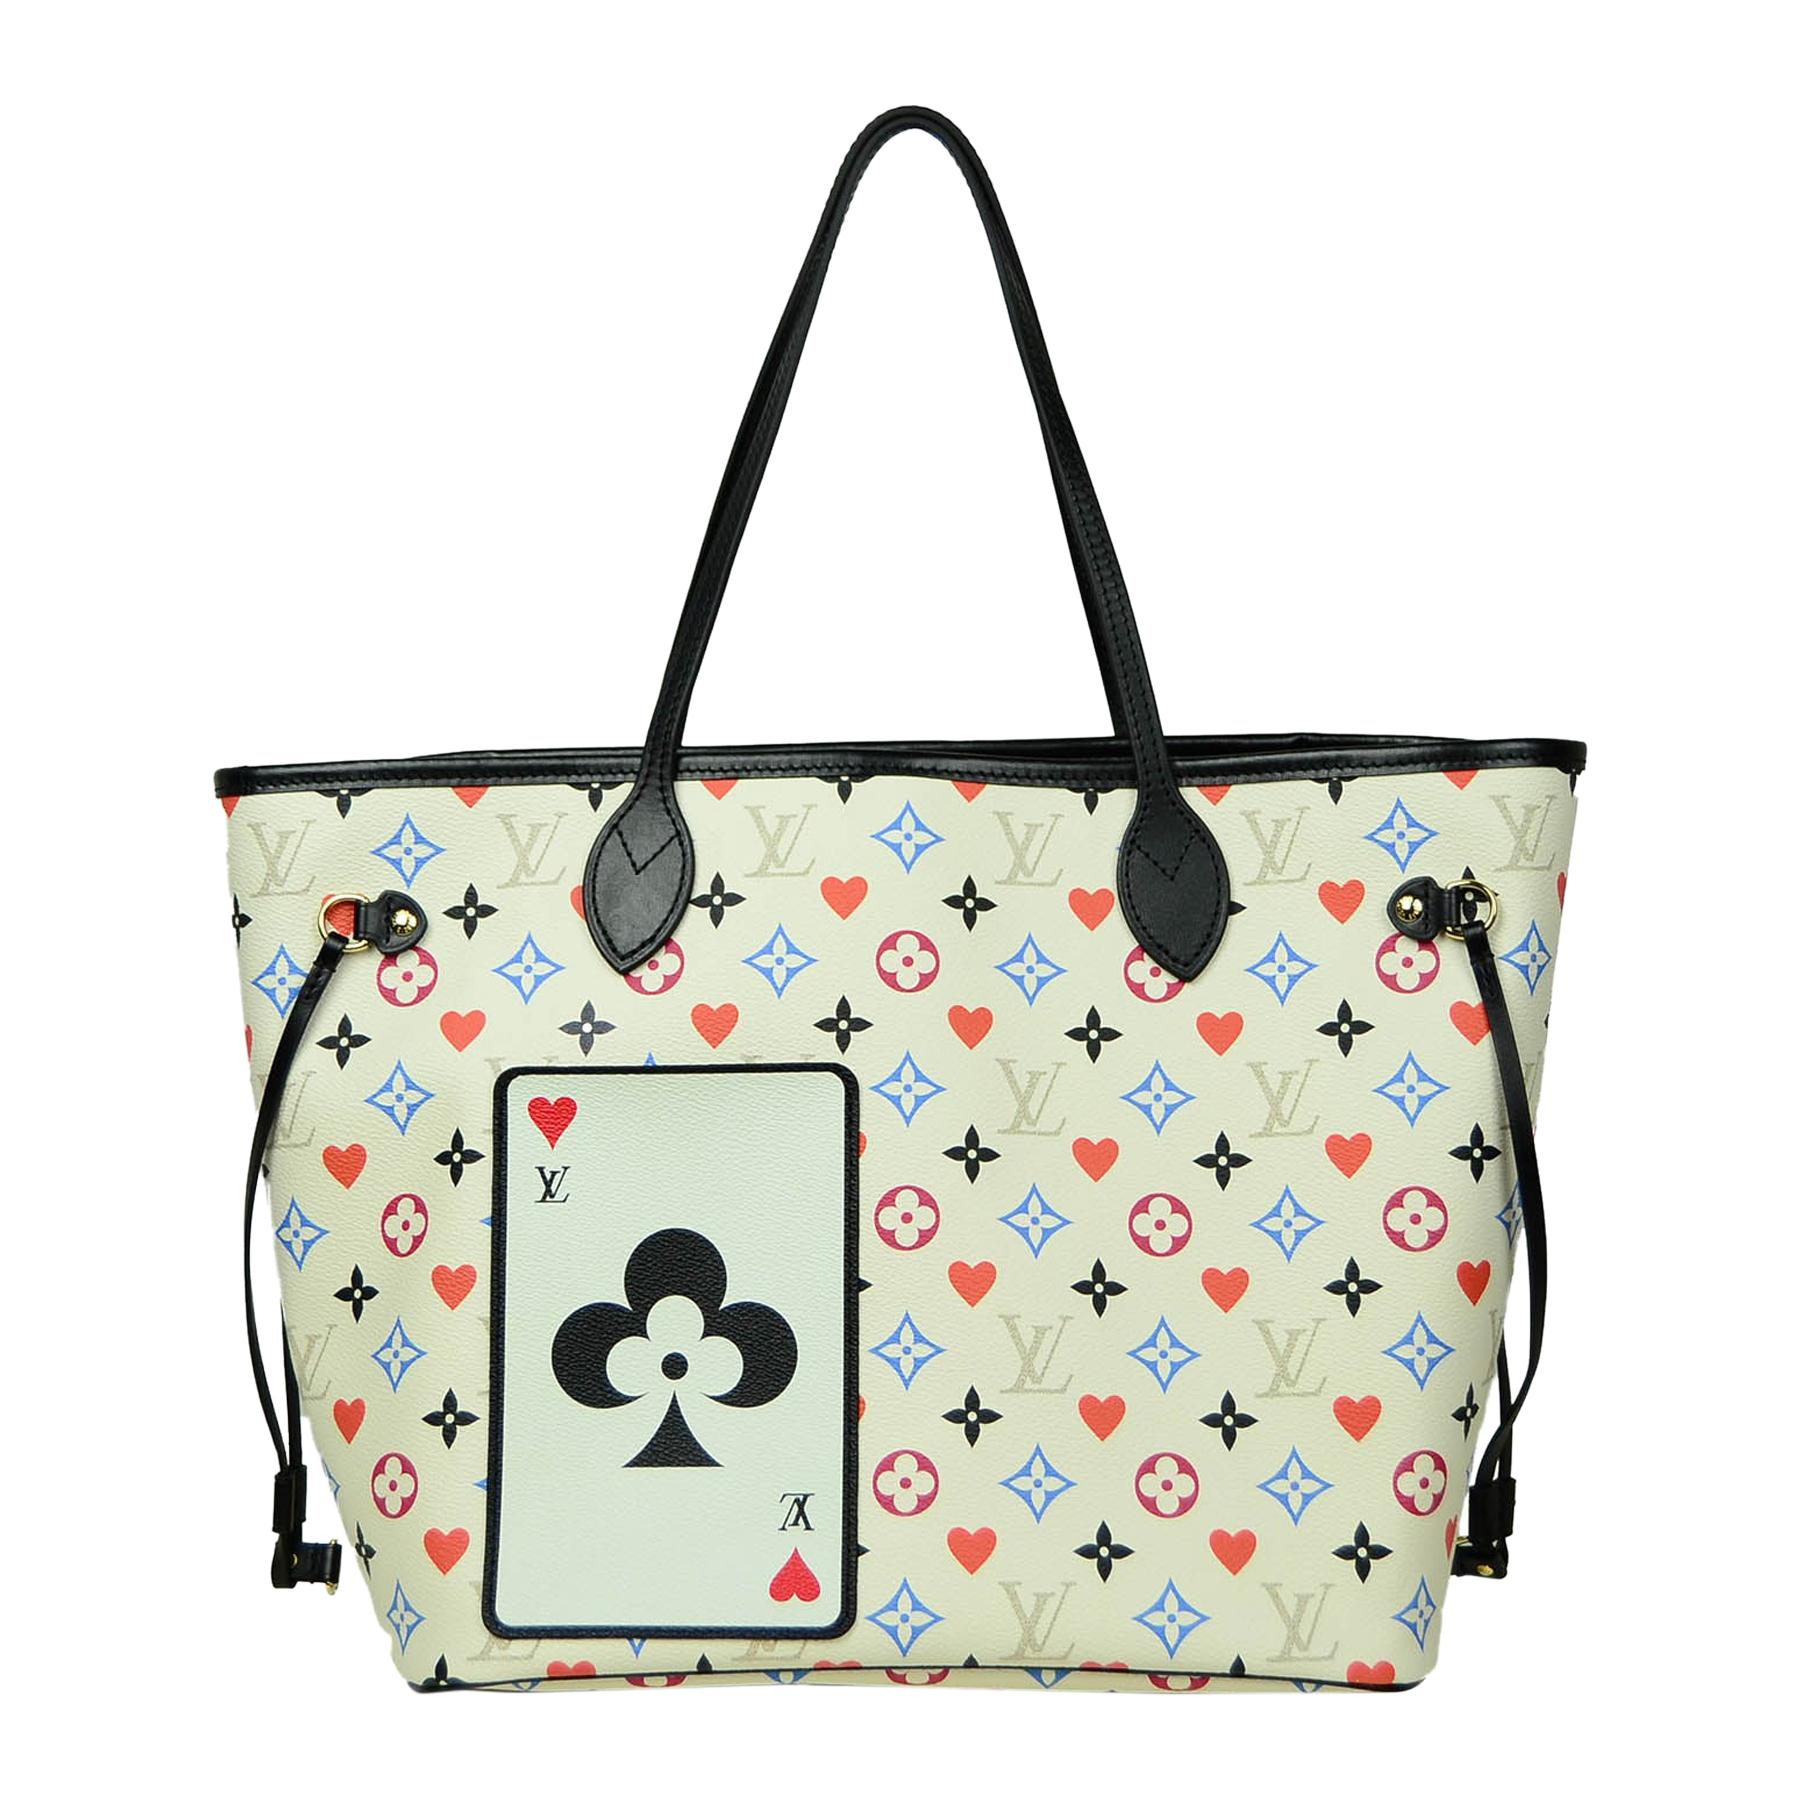 Louis Vuitton White Multicolor Monogram Game On Neverfull MM Tote Bag